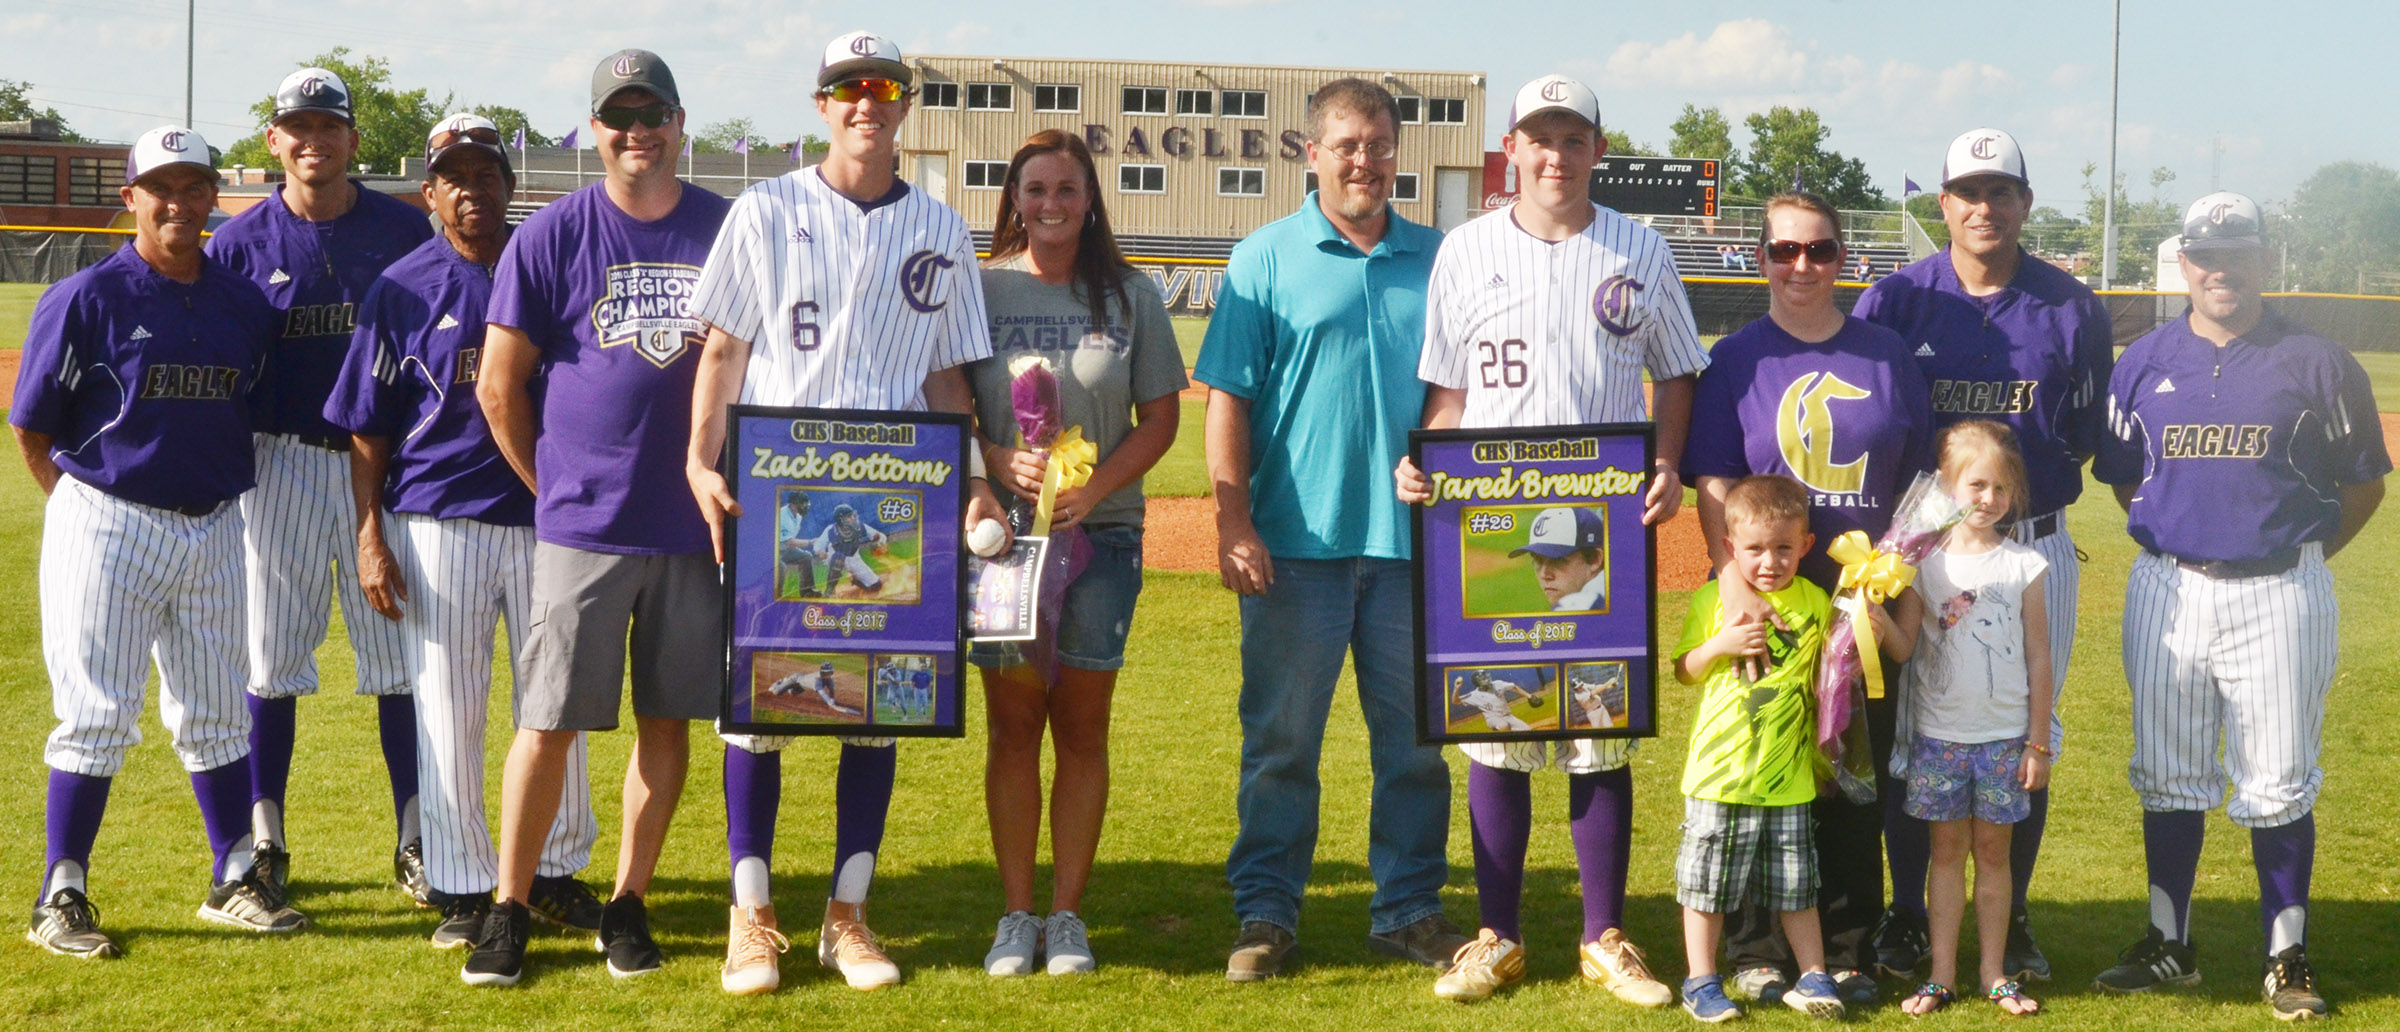 CHS seniors Zack Bottoms and Jared Brewster are honored for their dedication to the CHS baseball team. They are pictured with their families and coaches. From left are assistant coaches Lynn Kearney, Zach Lewis and Phil Gowdy, Bottoms's dad Adam, Bottoms, Bottoms's mother Kecia, Brewster's dad David, Brewster, Brewster's mother Suzanne Davis, Brewster's siblings Jaden and Jewell, head coach Kirby Smith and assistant coach Blake Milby.